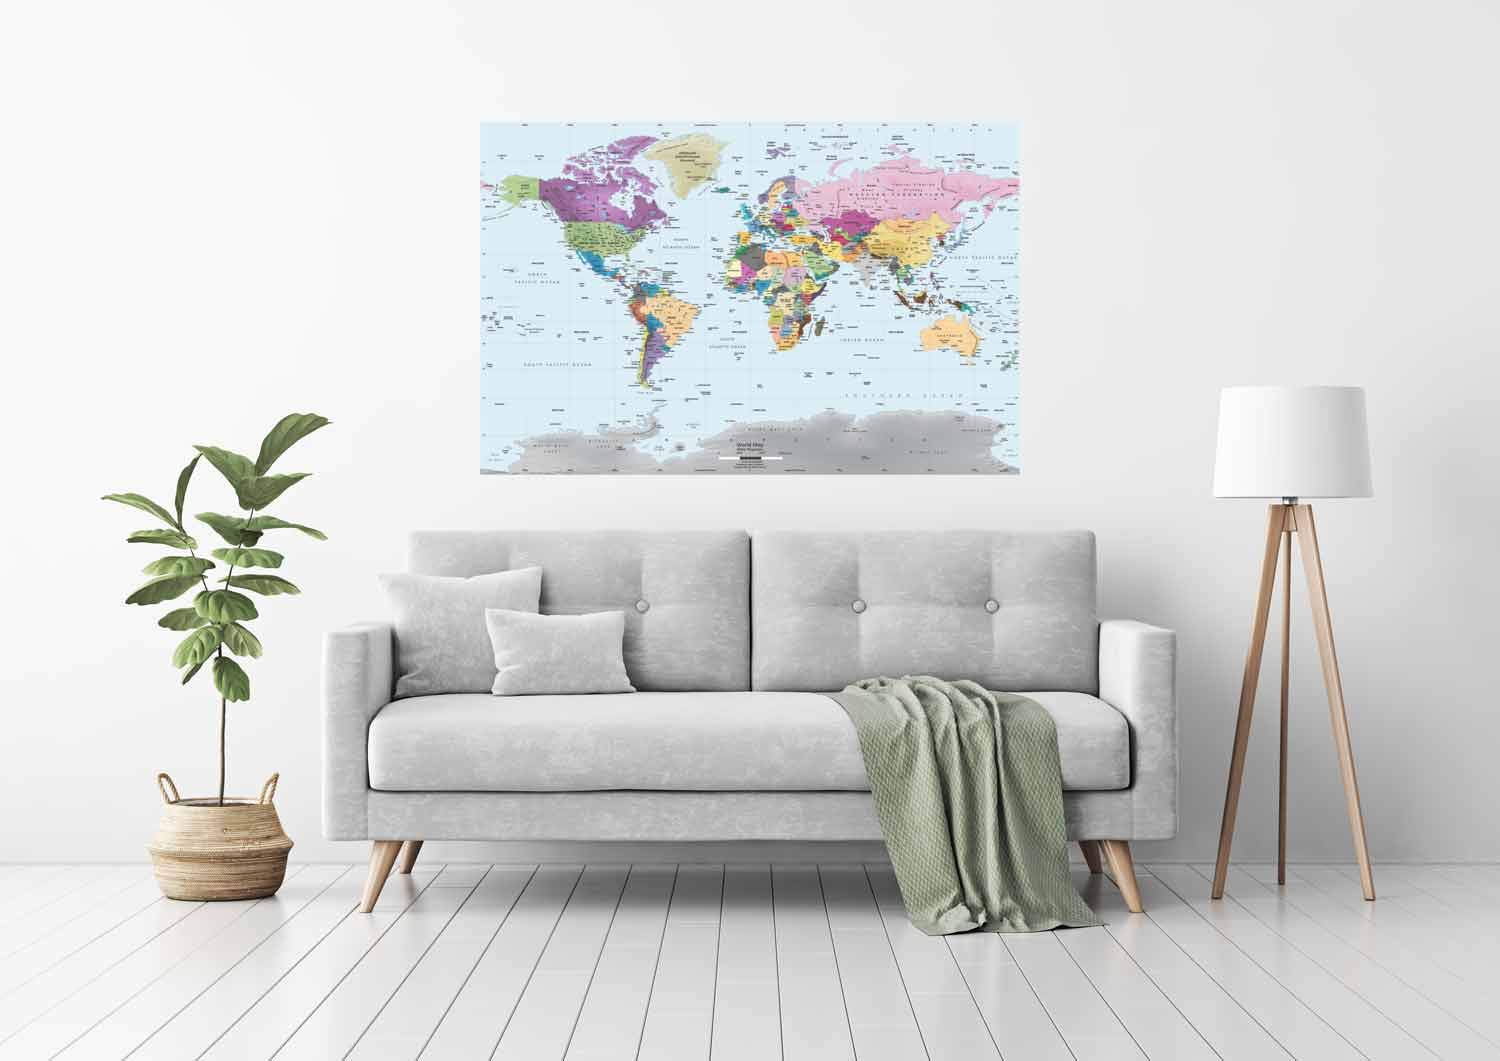 Academia Maps World Map Wall Mural - Modern Colorful Map - 53 x 36 - Premium Self-Adhesive Fabric - Professional-Grade DIY by Academia Maps (Image #2)